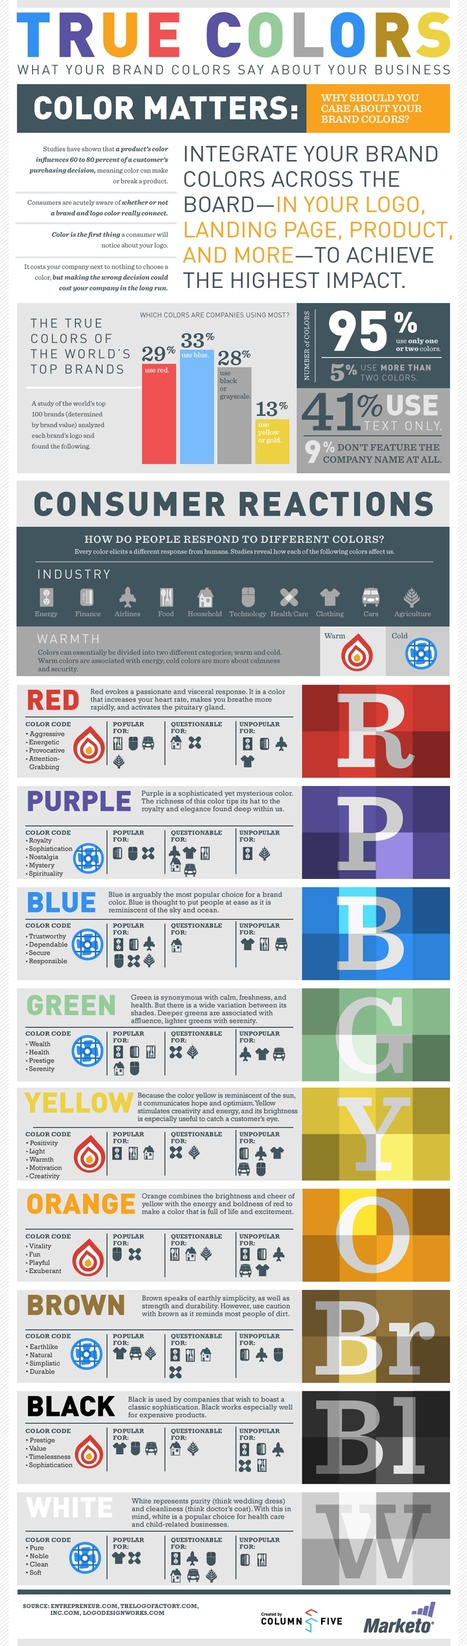 Why are brand colors important, Branding Magazine | Marketing, PR & Communications | Scoop.it